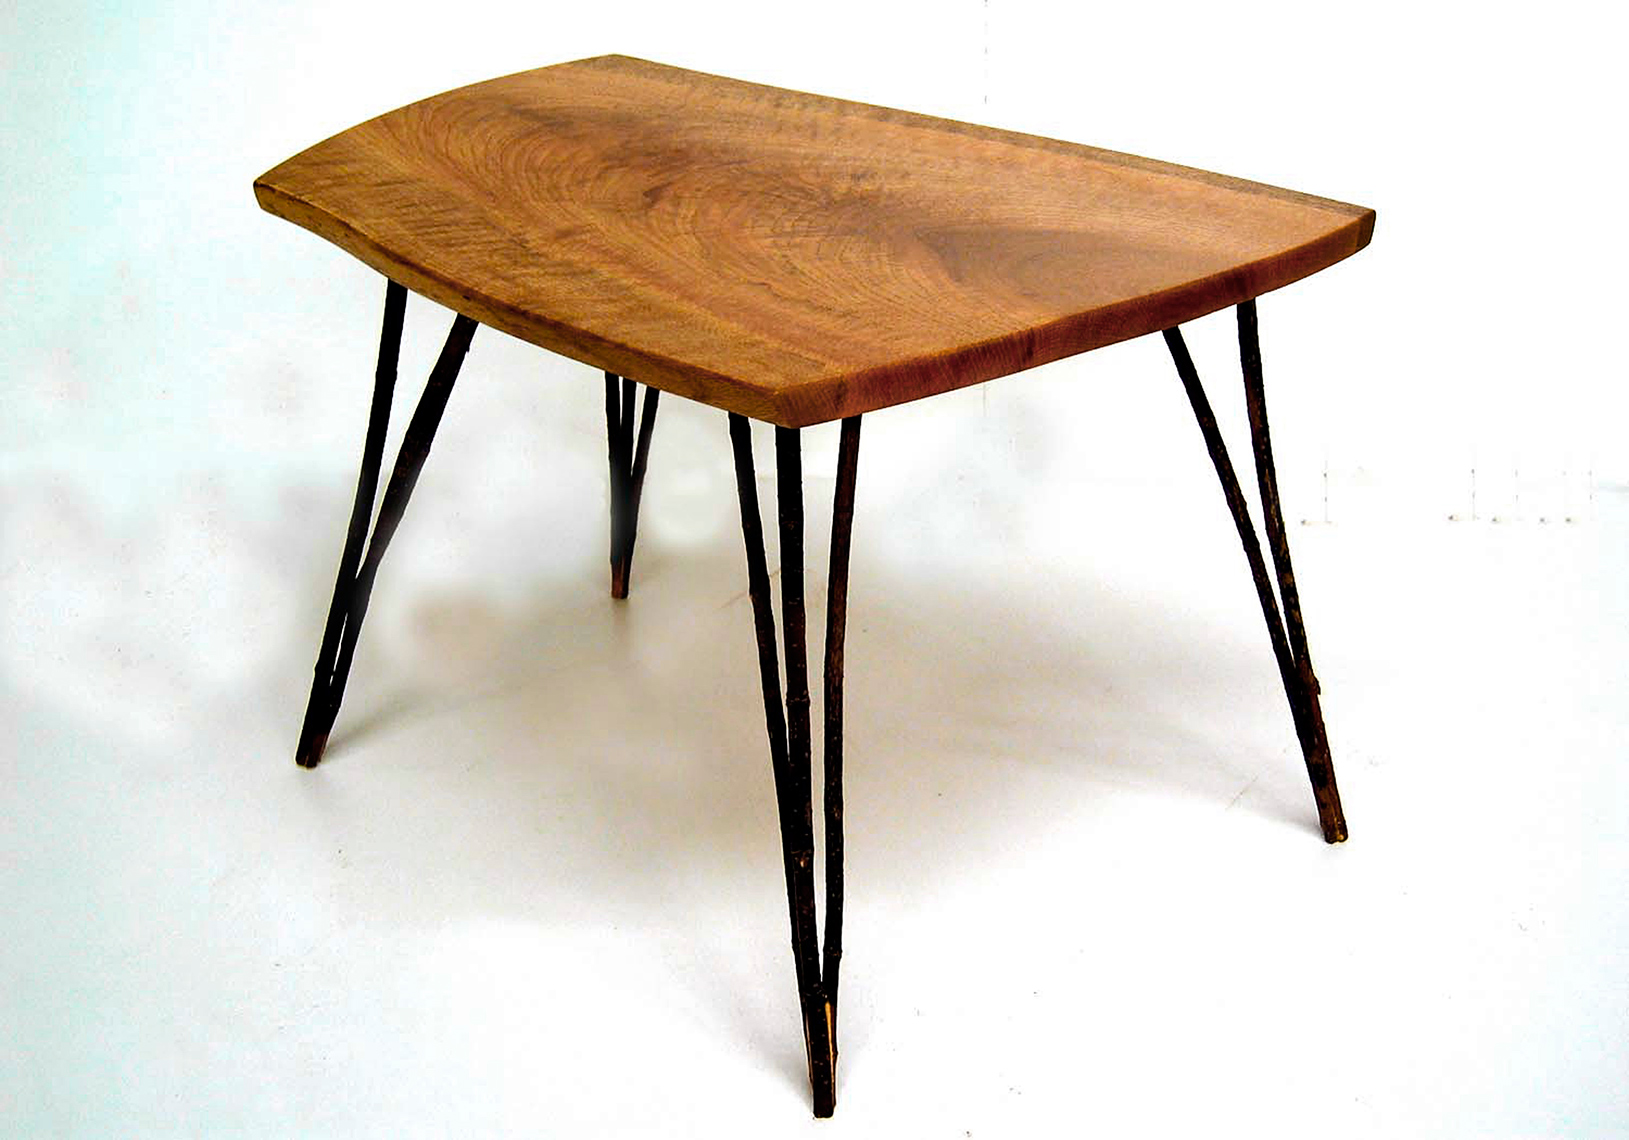 new jersey custom wood furniture-Contemporay Side Table with Figured Oak top and Branch Legs